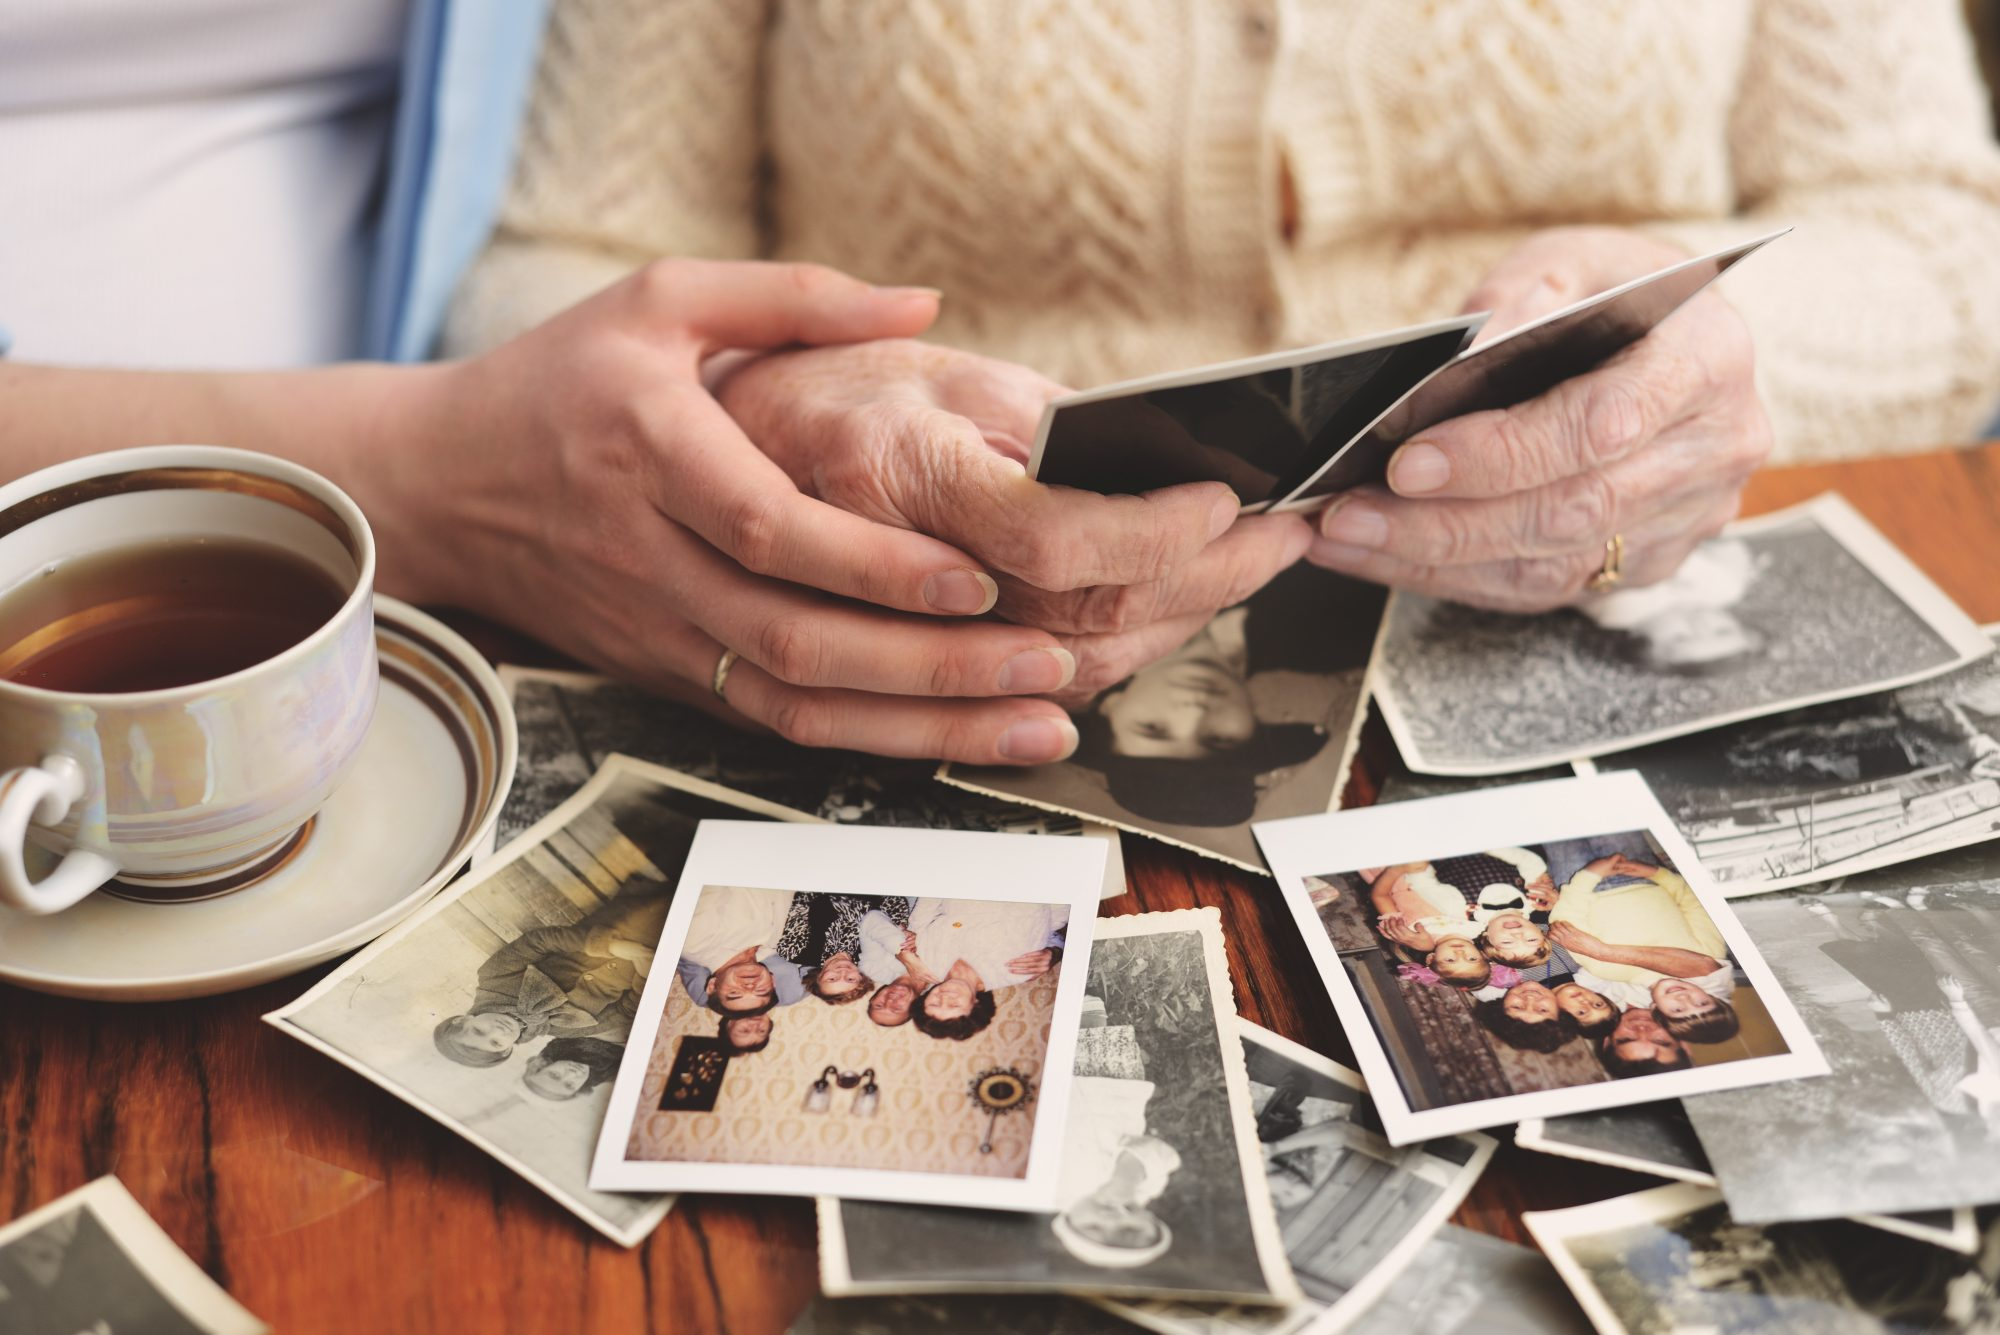 Woman looking at old photos